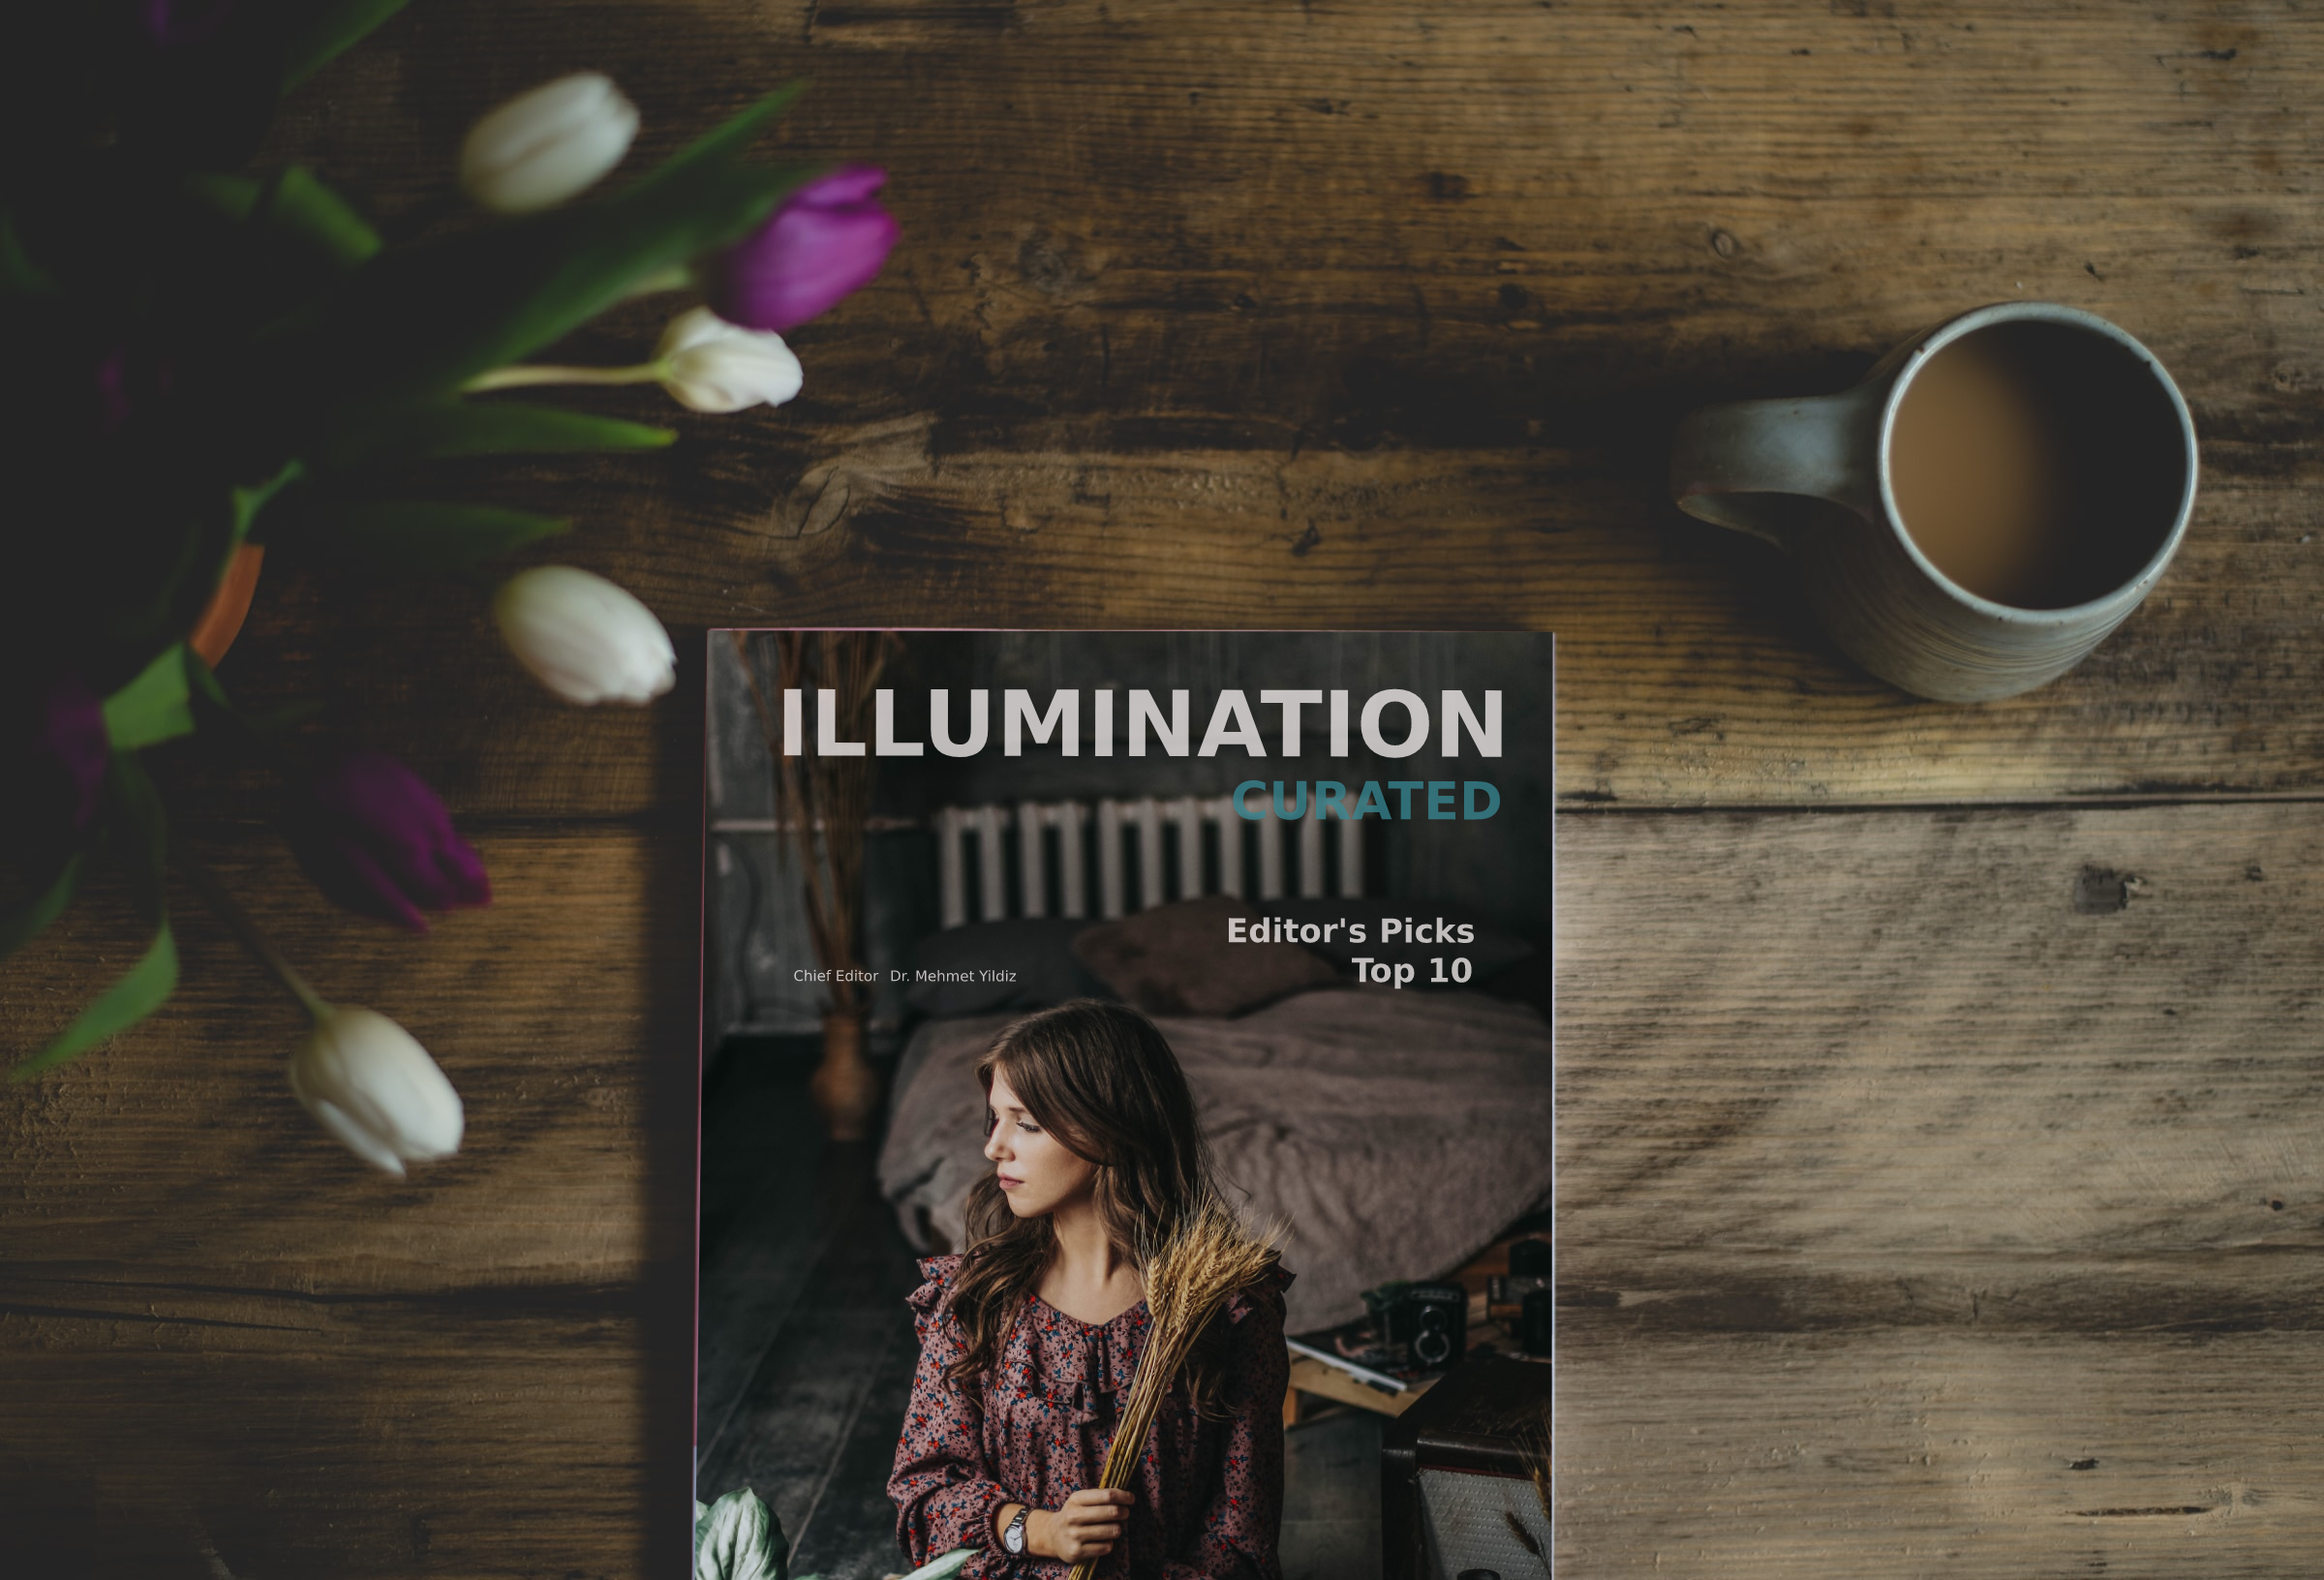 Flowers, a cup, a magazine with text: Illumination-Curated Editor's Picks Top 10